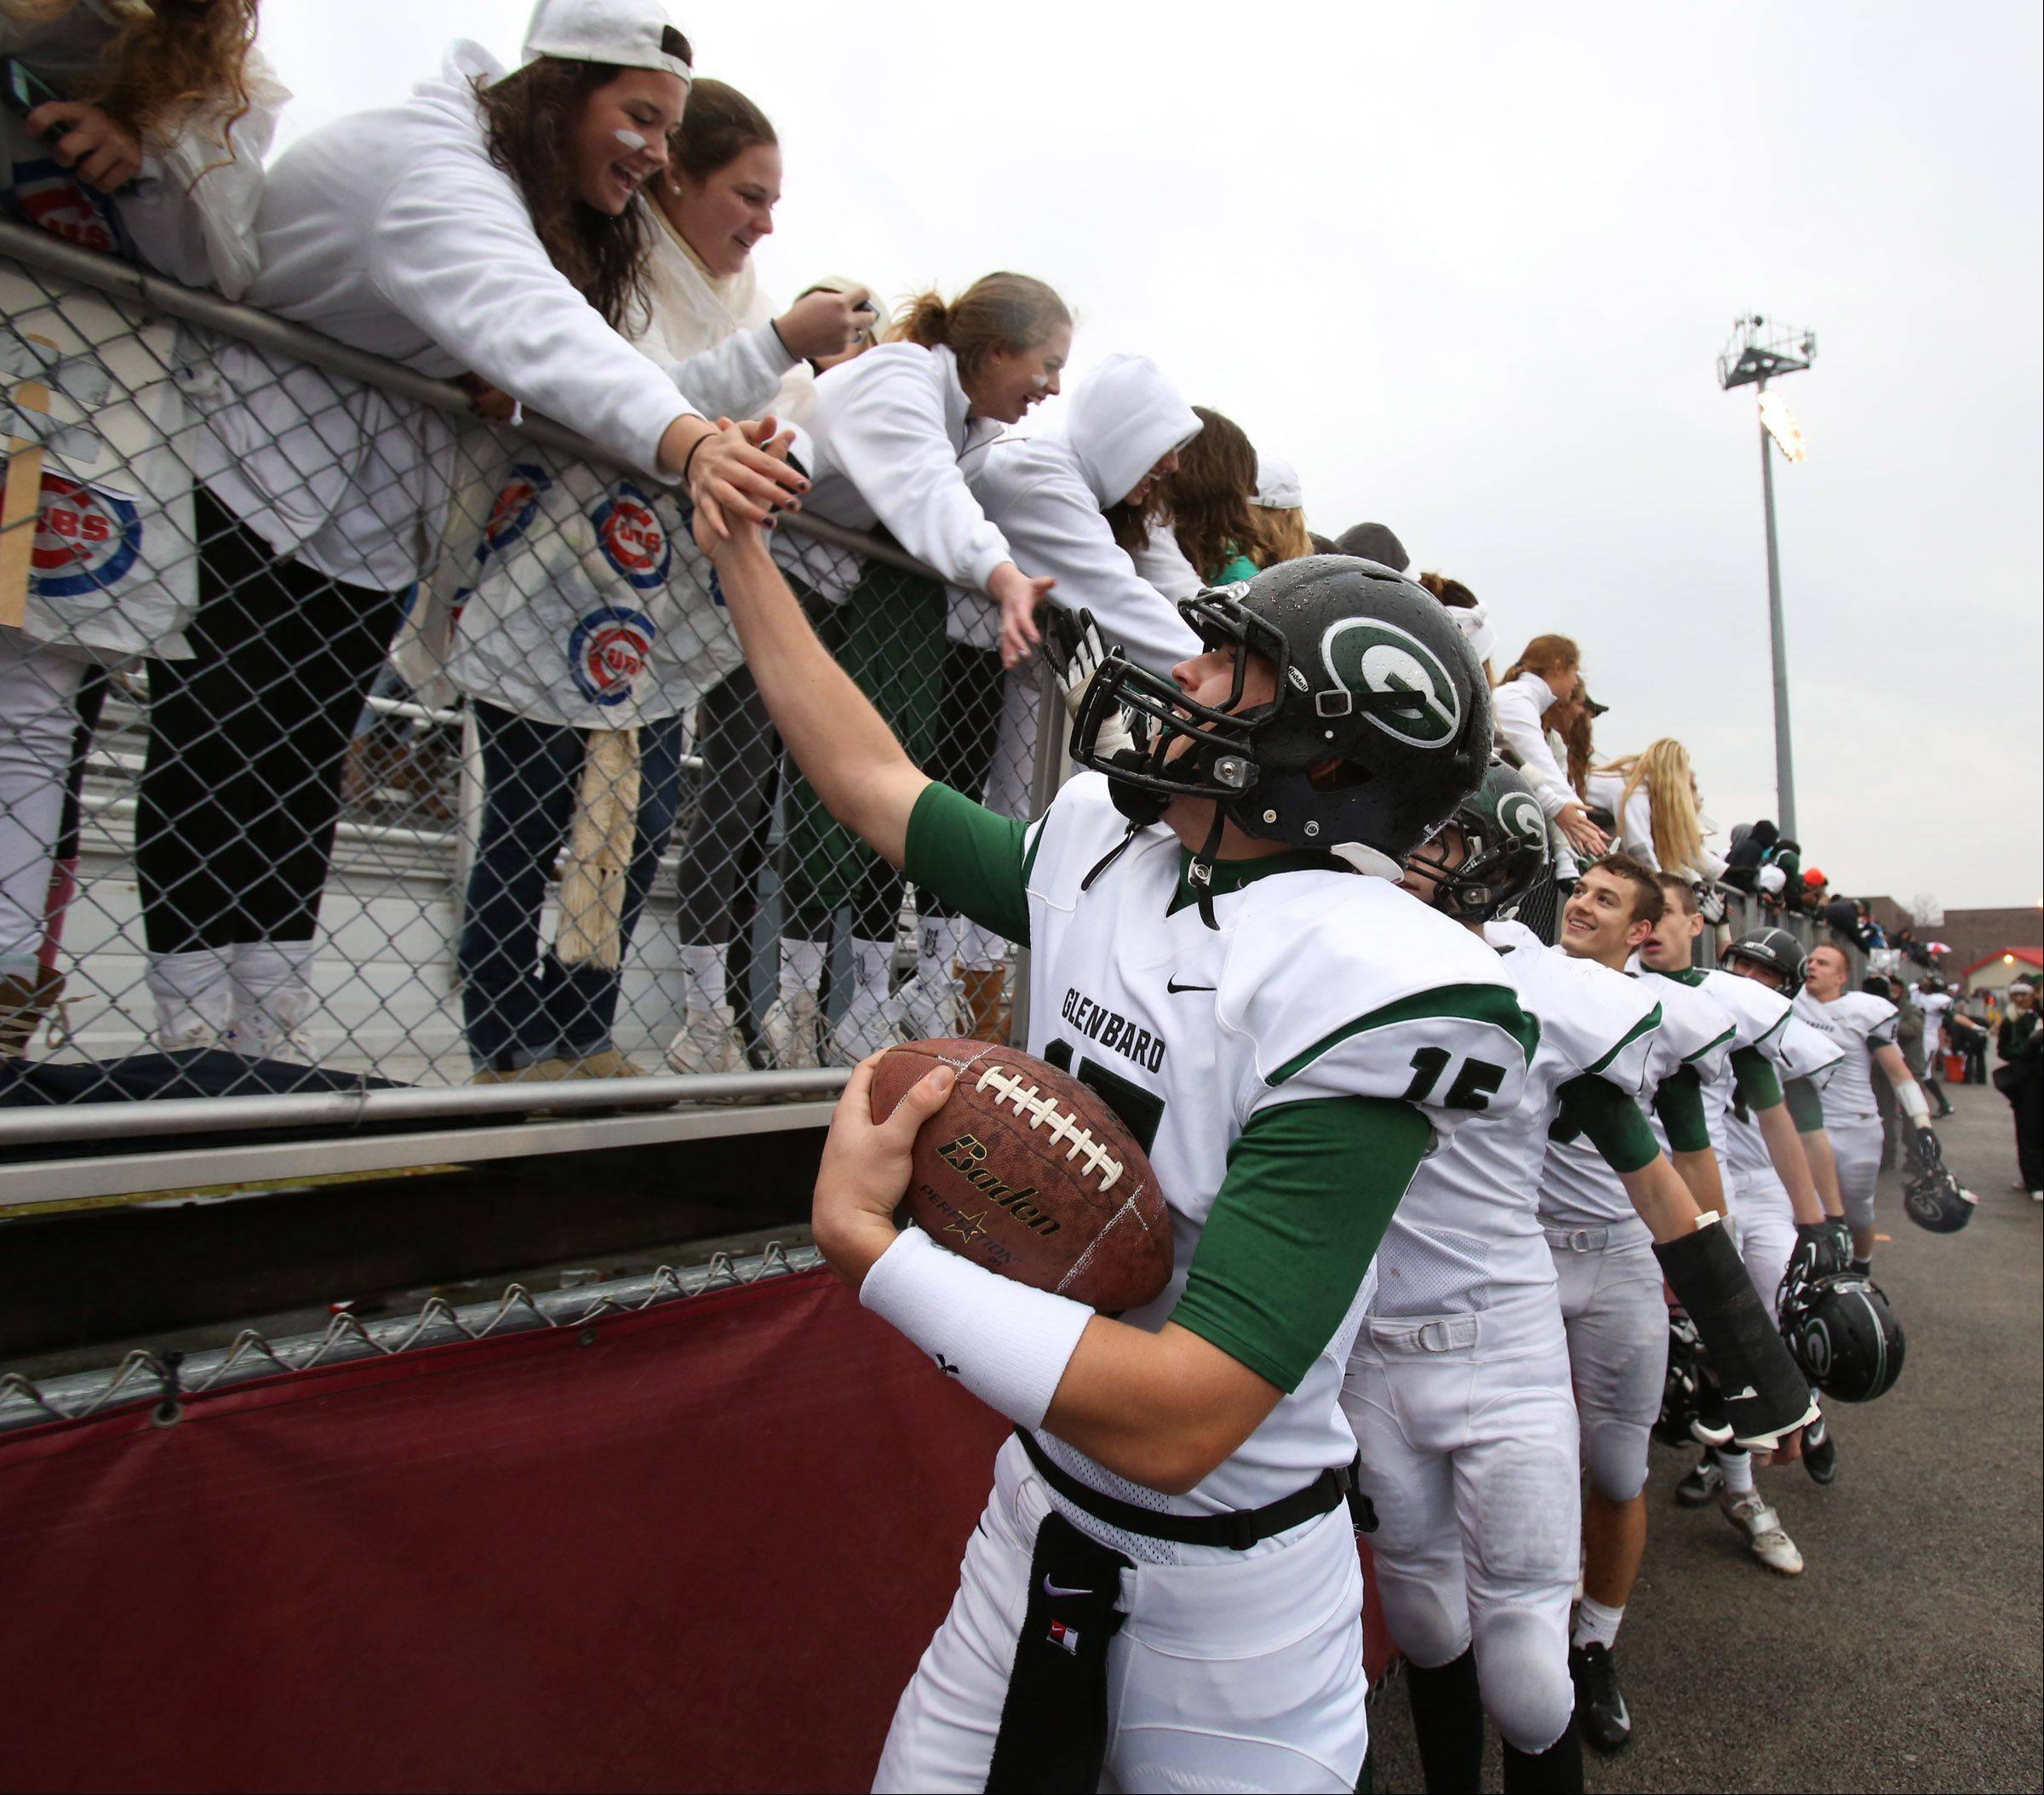 Glenbard West quarterback Kevin Dawrant celebrates with fans as Glenbard West wins 42-21 over Schaumburg in a quarterfinal playoff game on Saturday in Schaumburg.